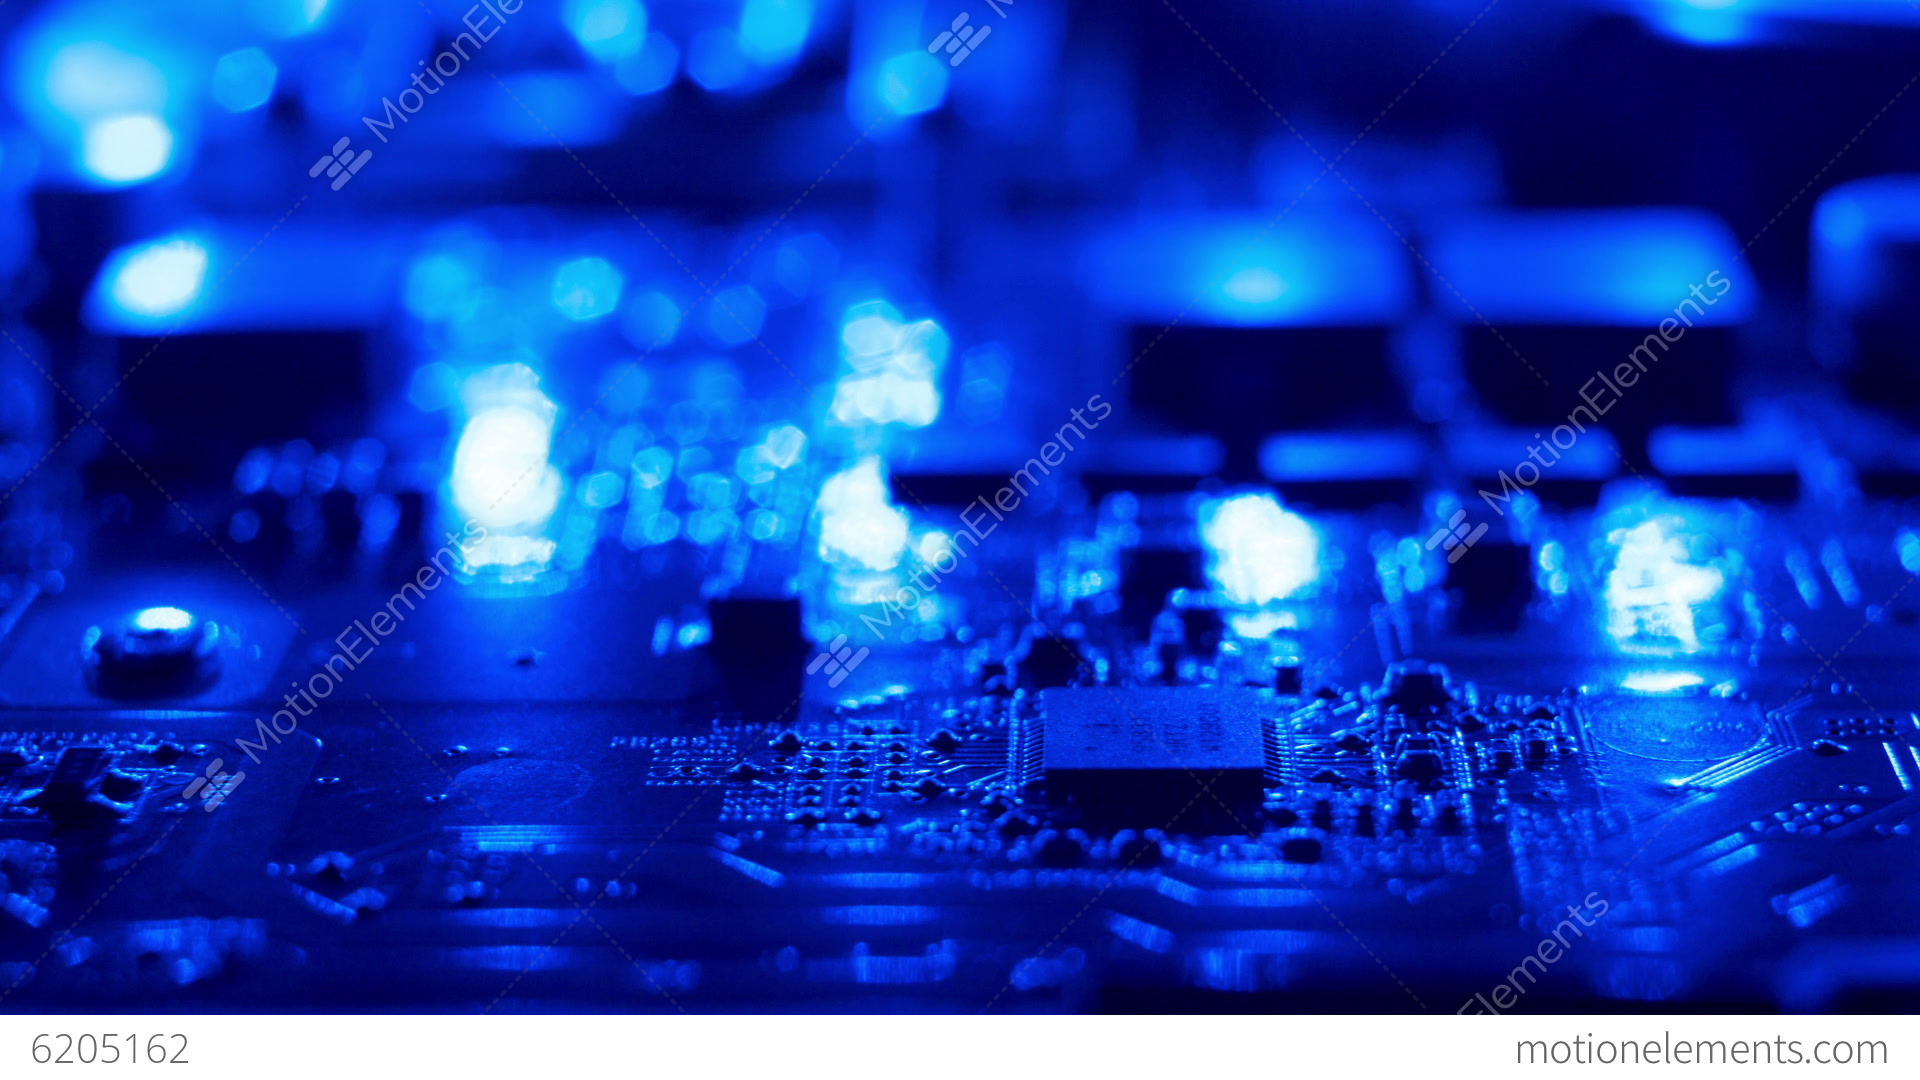 Blue Electronic Circuit Motion Background Stock video footage  6205162